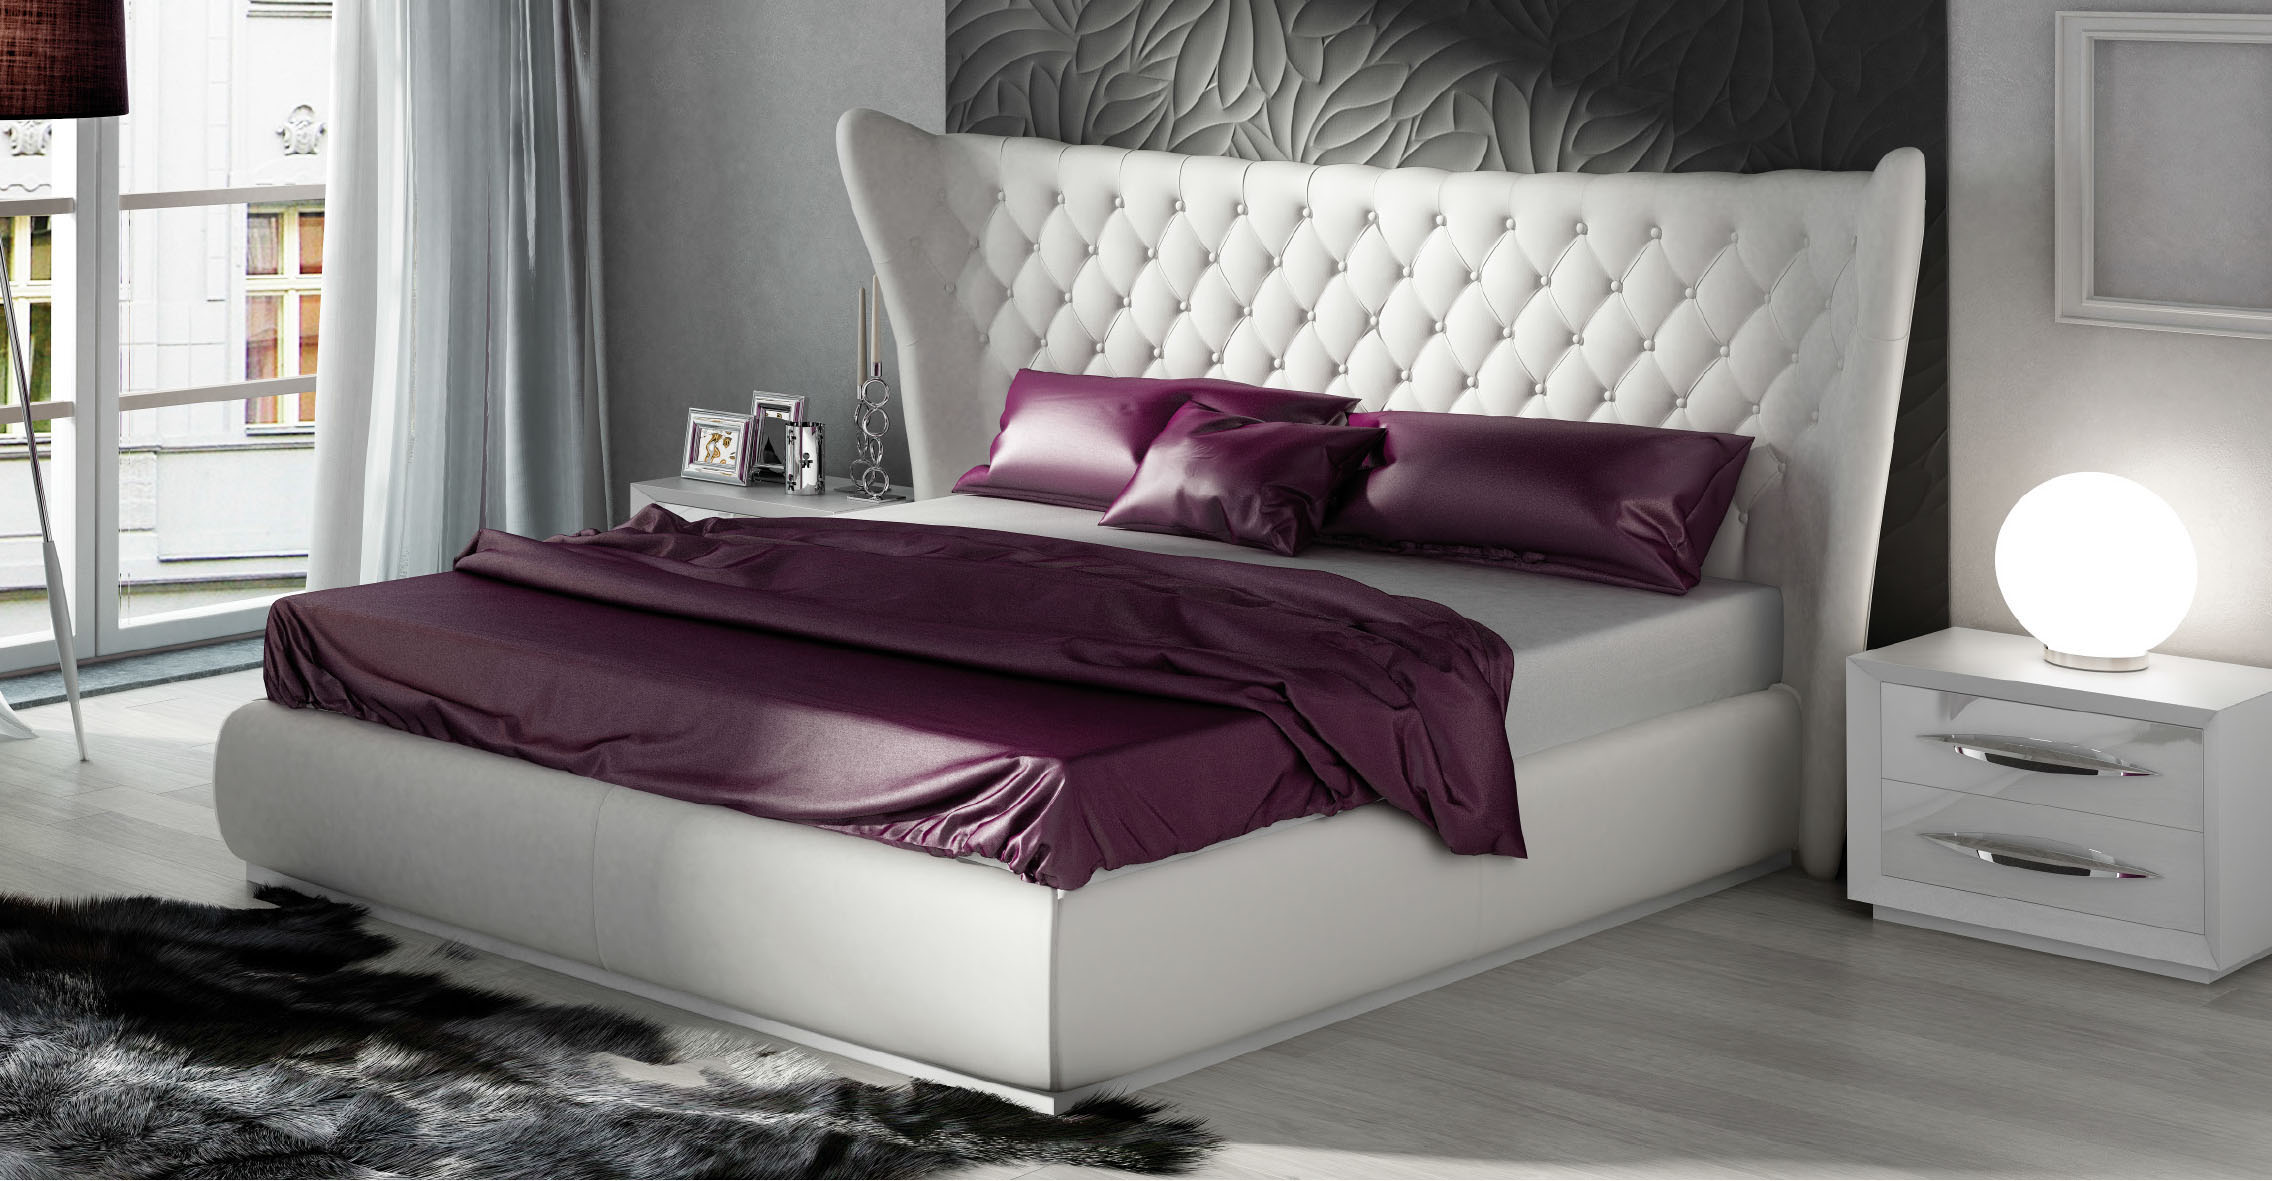 http://www.dommebeliny.com/images/product/fullsize/Bedroom-Furniture_Modern-Bedrooms_Miami_side_12.jpg